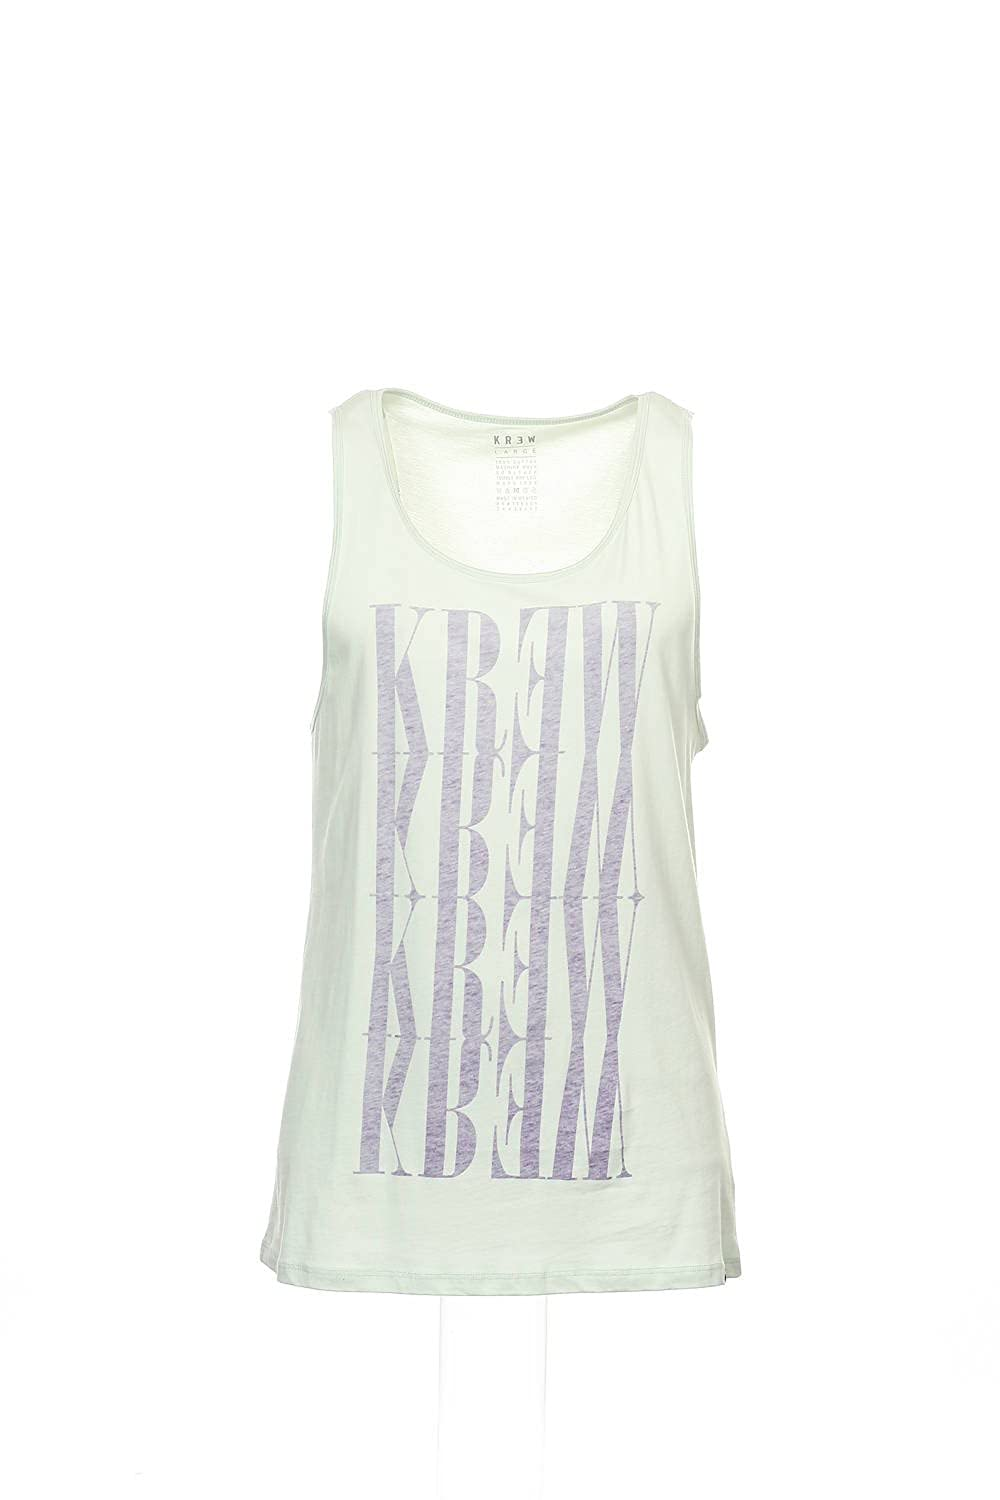 KR3W - Mens Reflect Tank Top